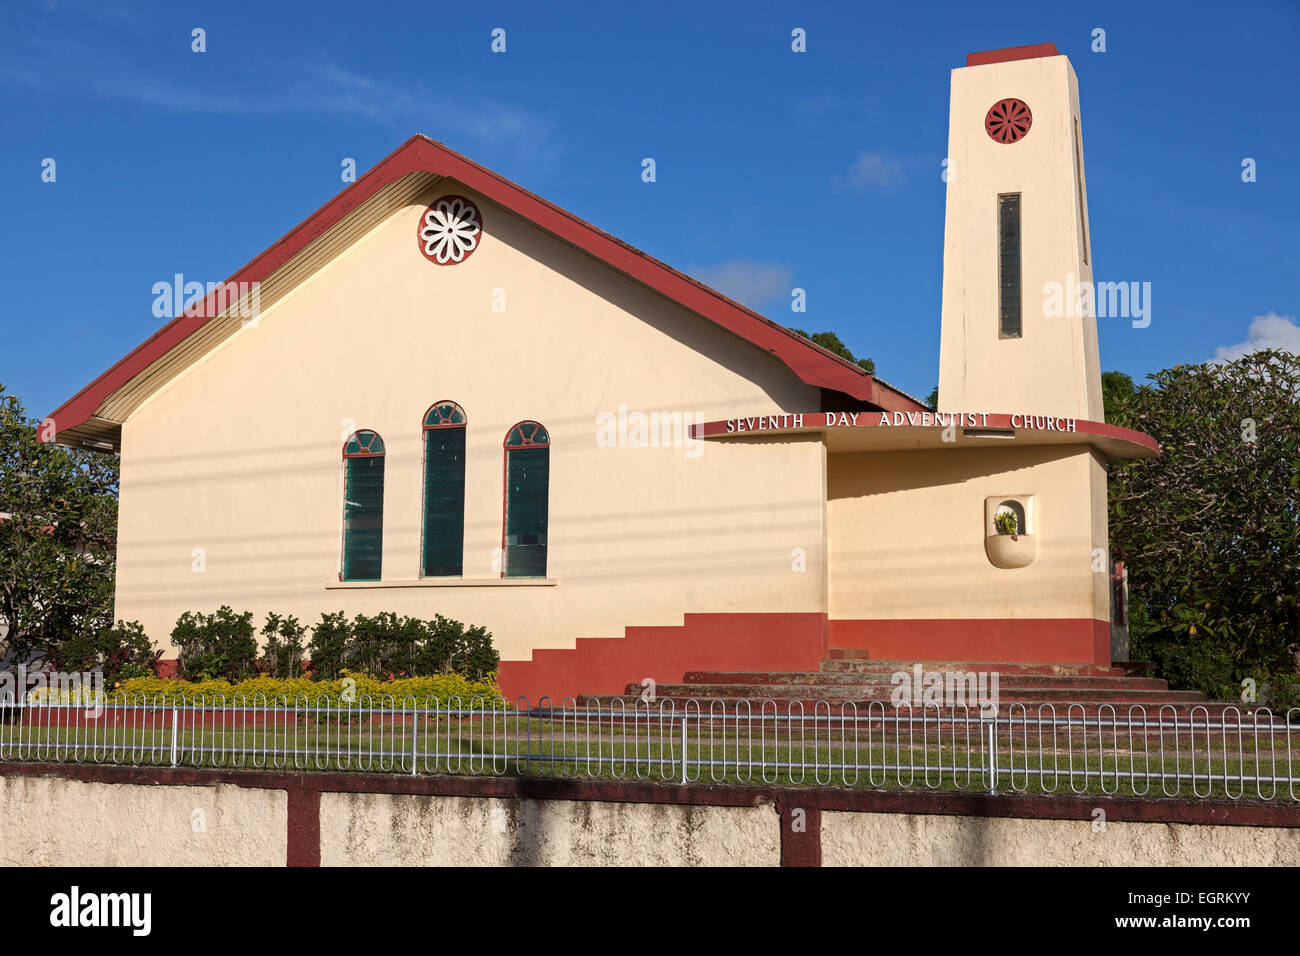 Seventh Day Adventist Church in Tonga - Stock Image